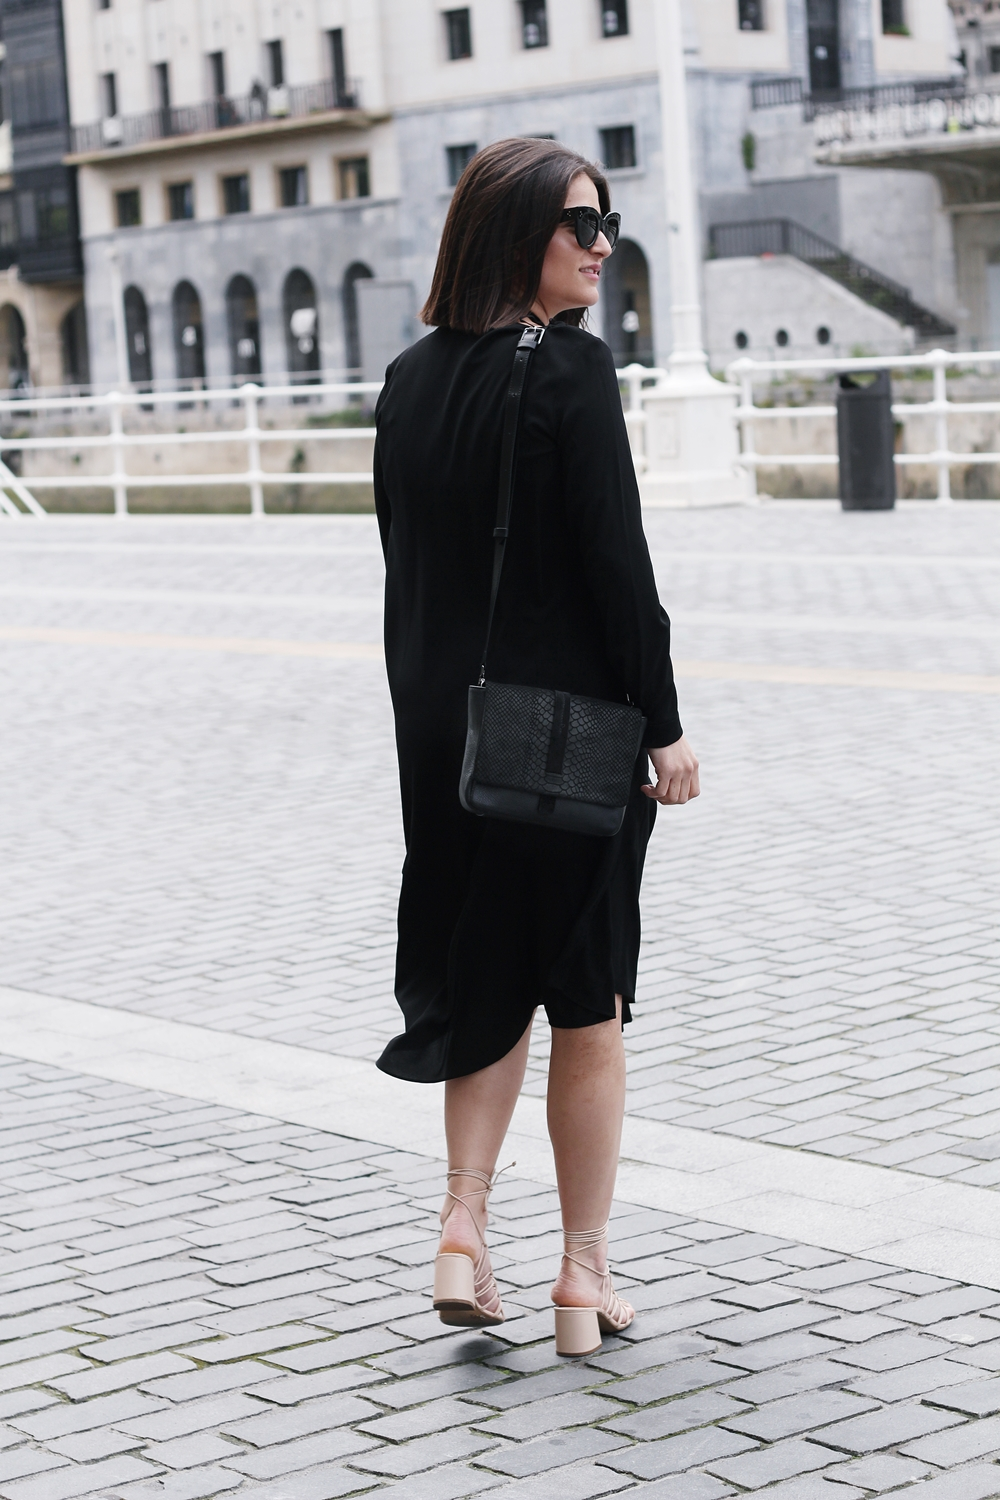 COS BLACK DRESS, CELINE SUNGLASSES